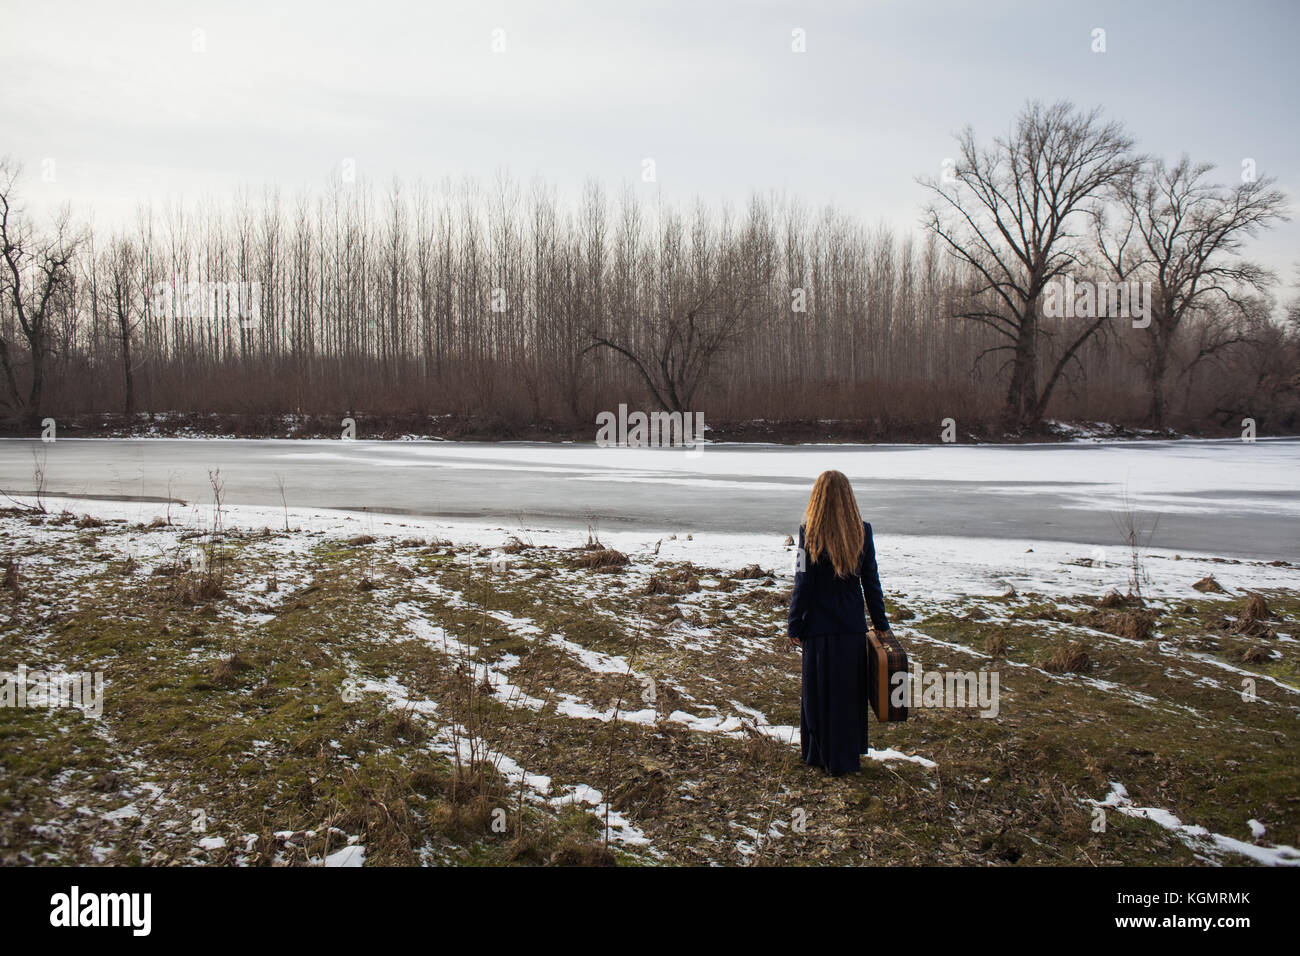 Woman standing near river with old suitcase and looking for a way to go - Stock Image